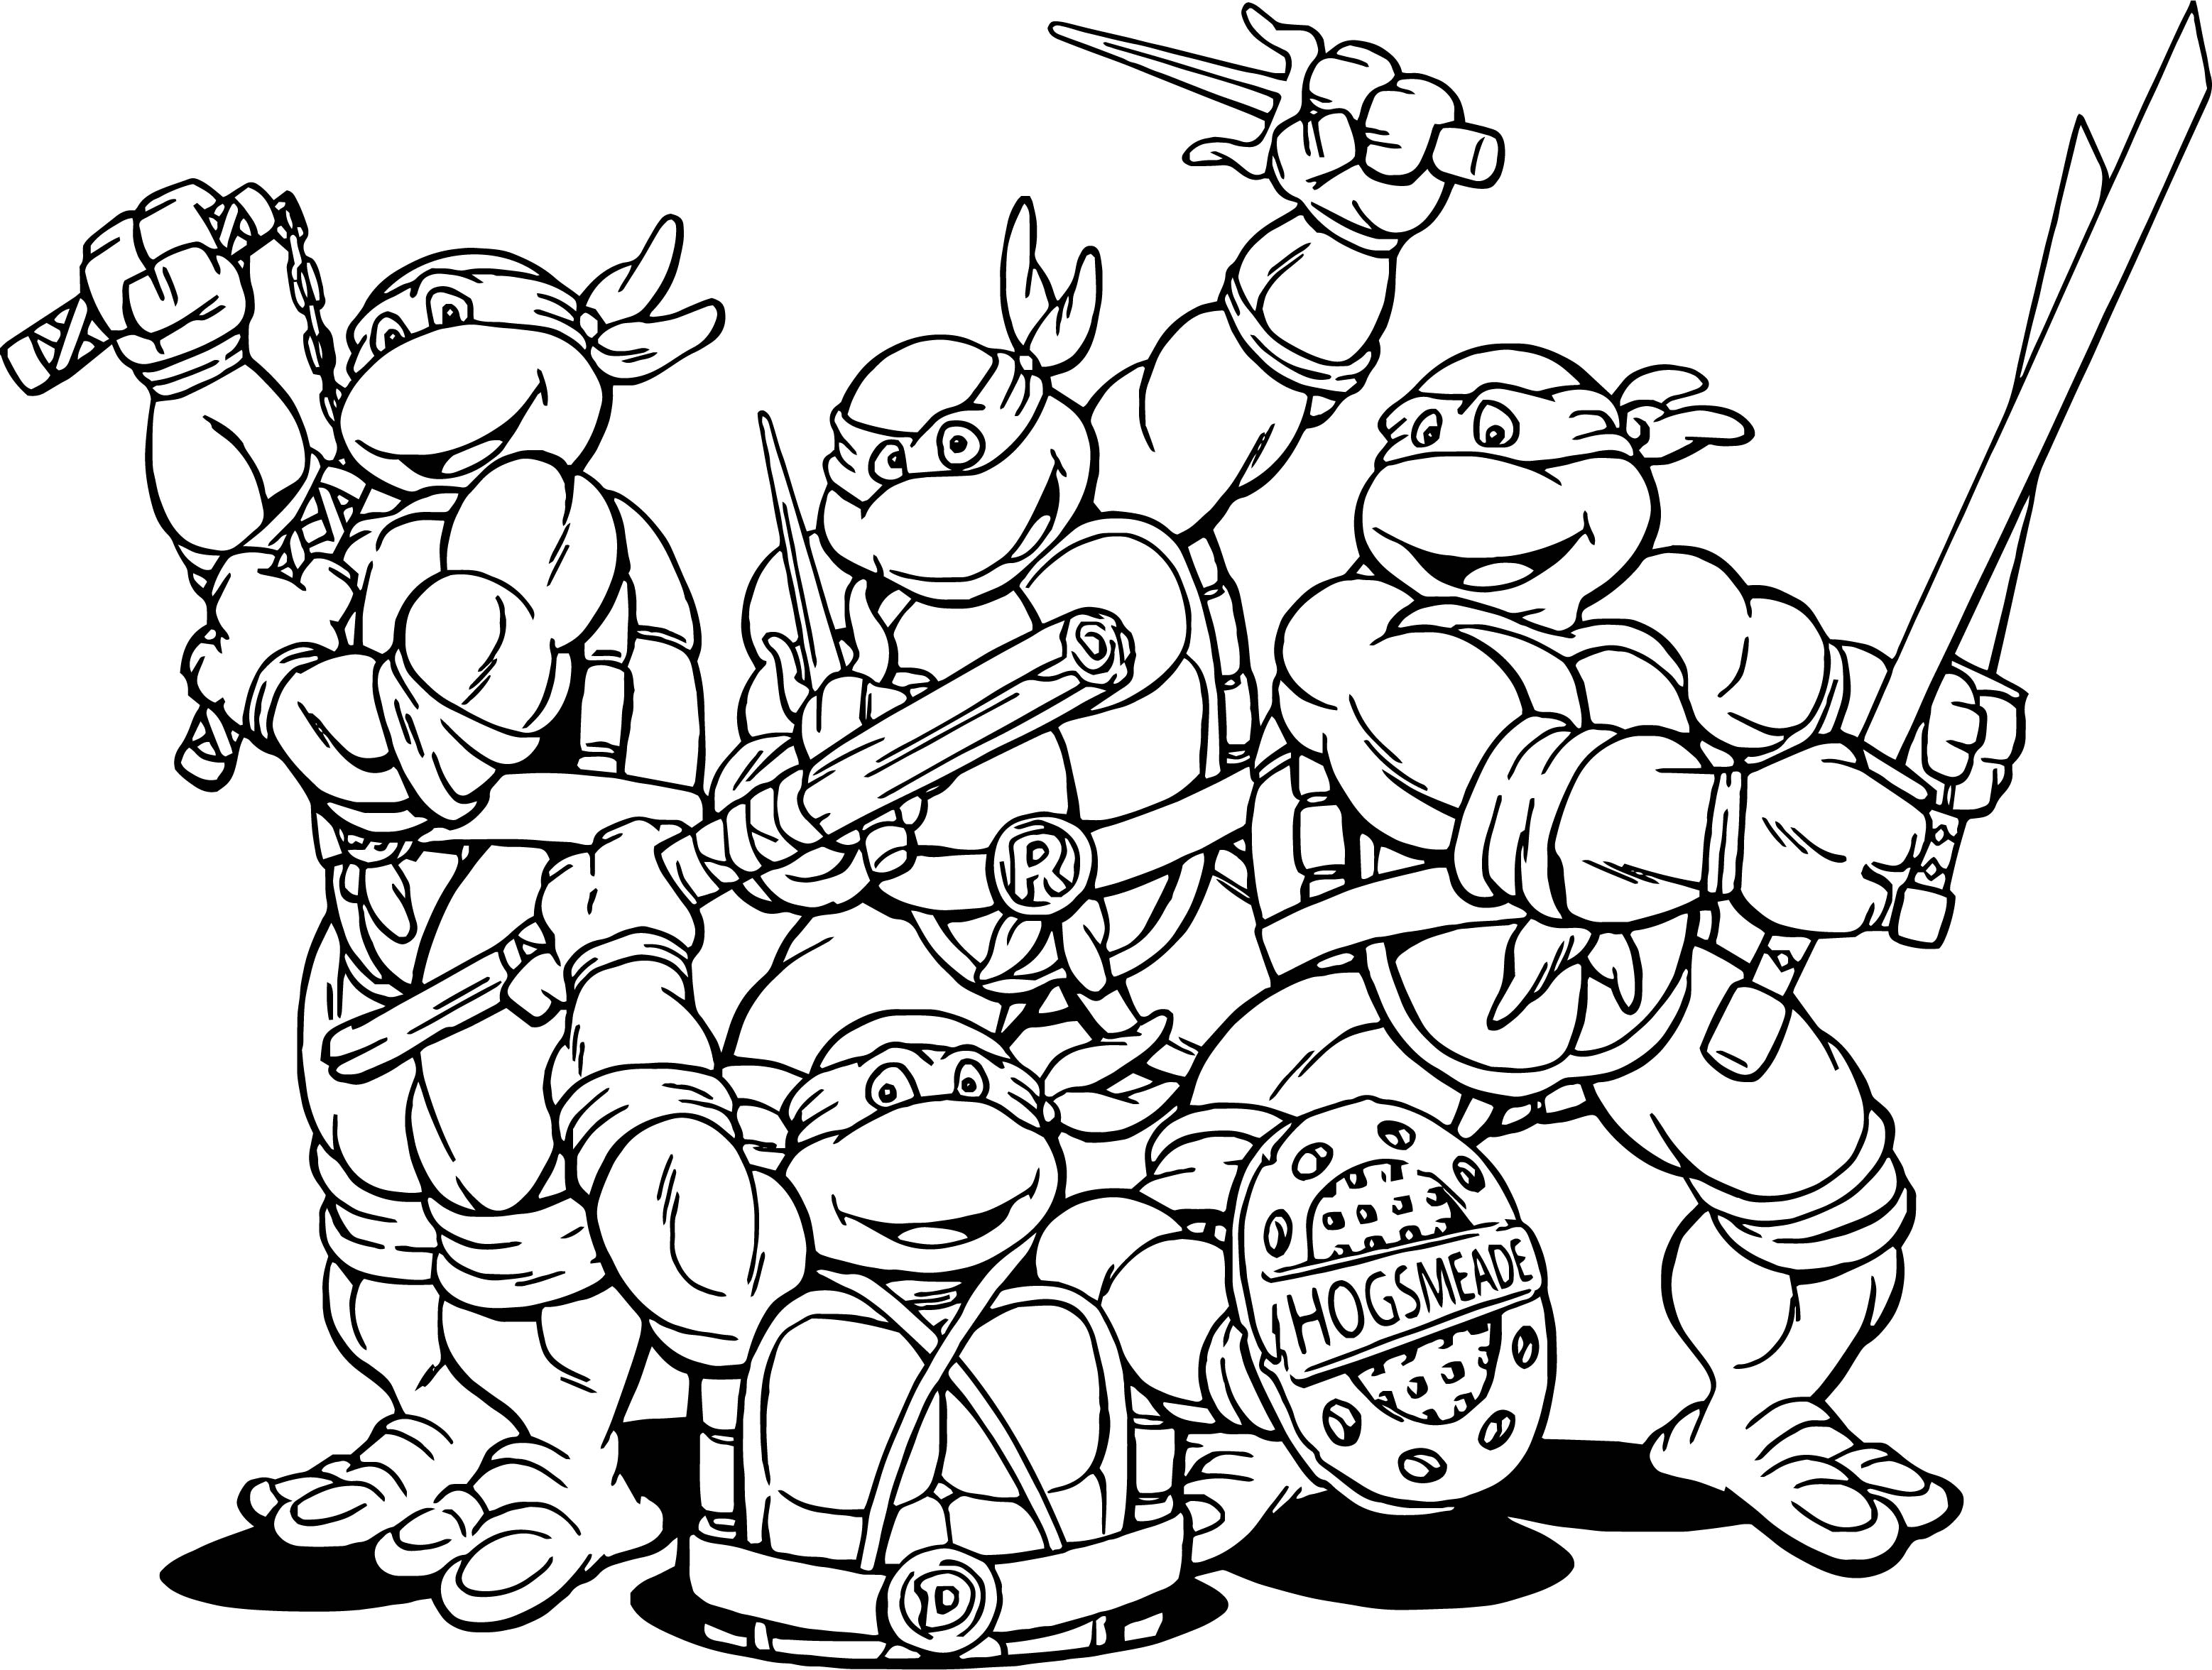 Teenage mutant ninja turtles cartoon coloring page for Coloring pages of ninjas